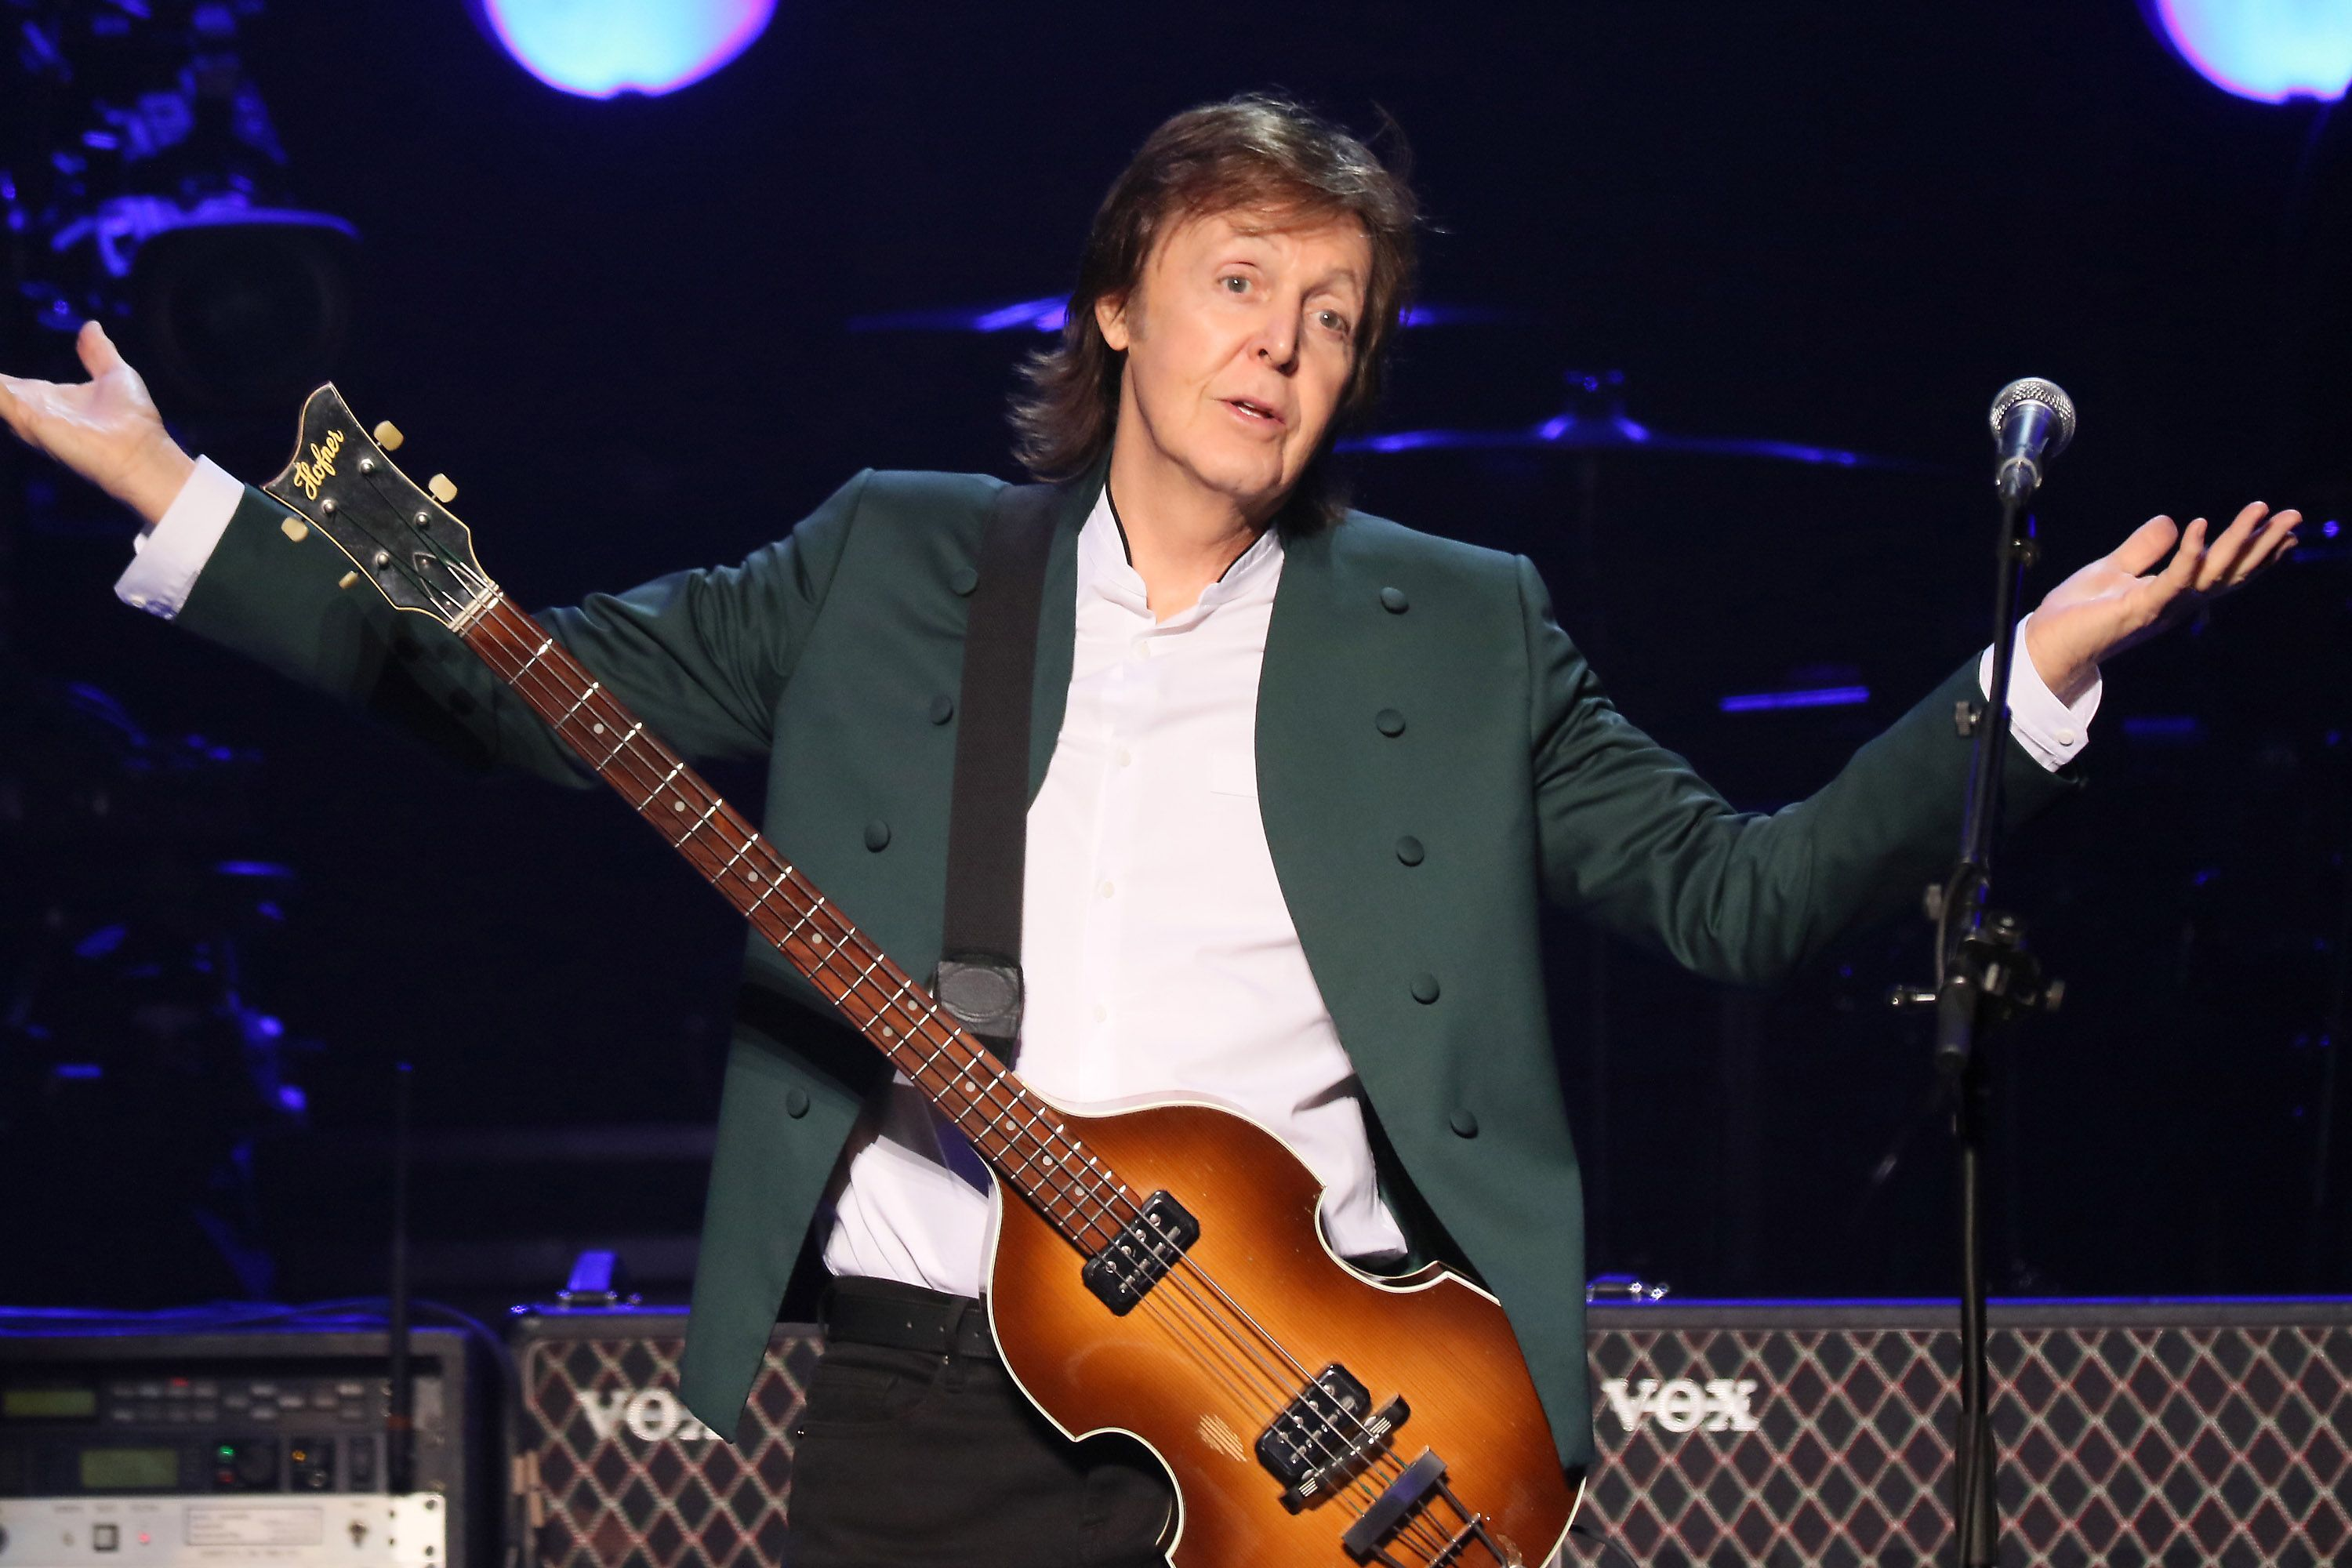 Paul McCartney Explains Why Lost Beatles Songs Will Never Be